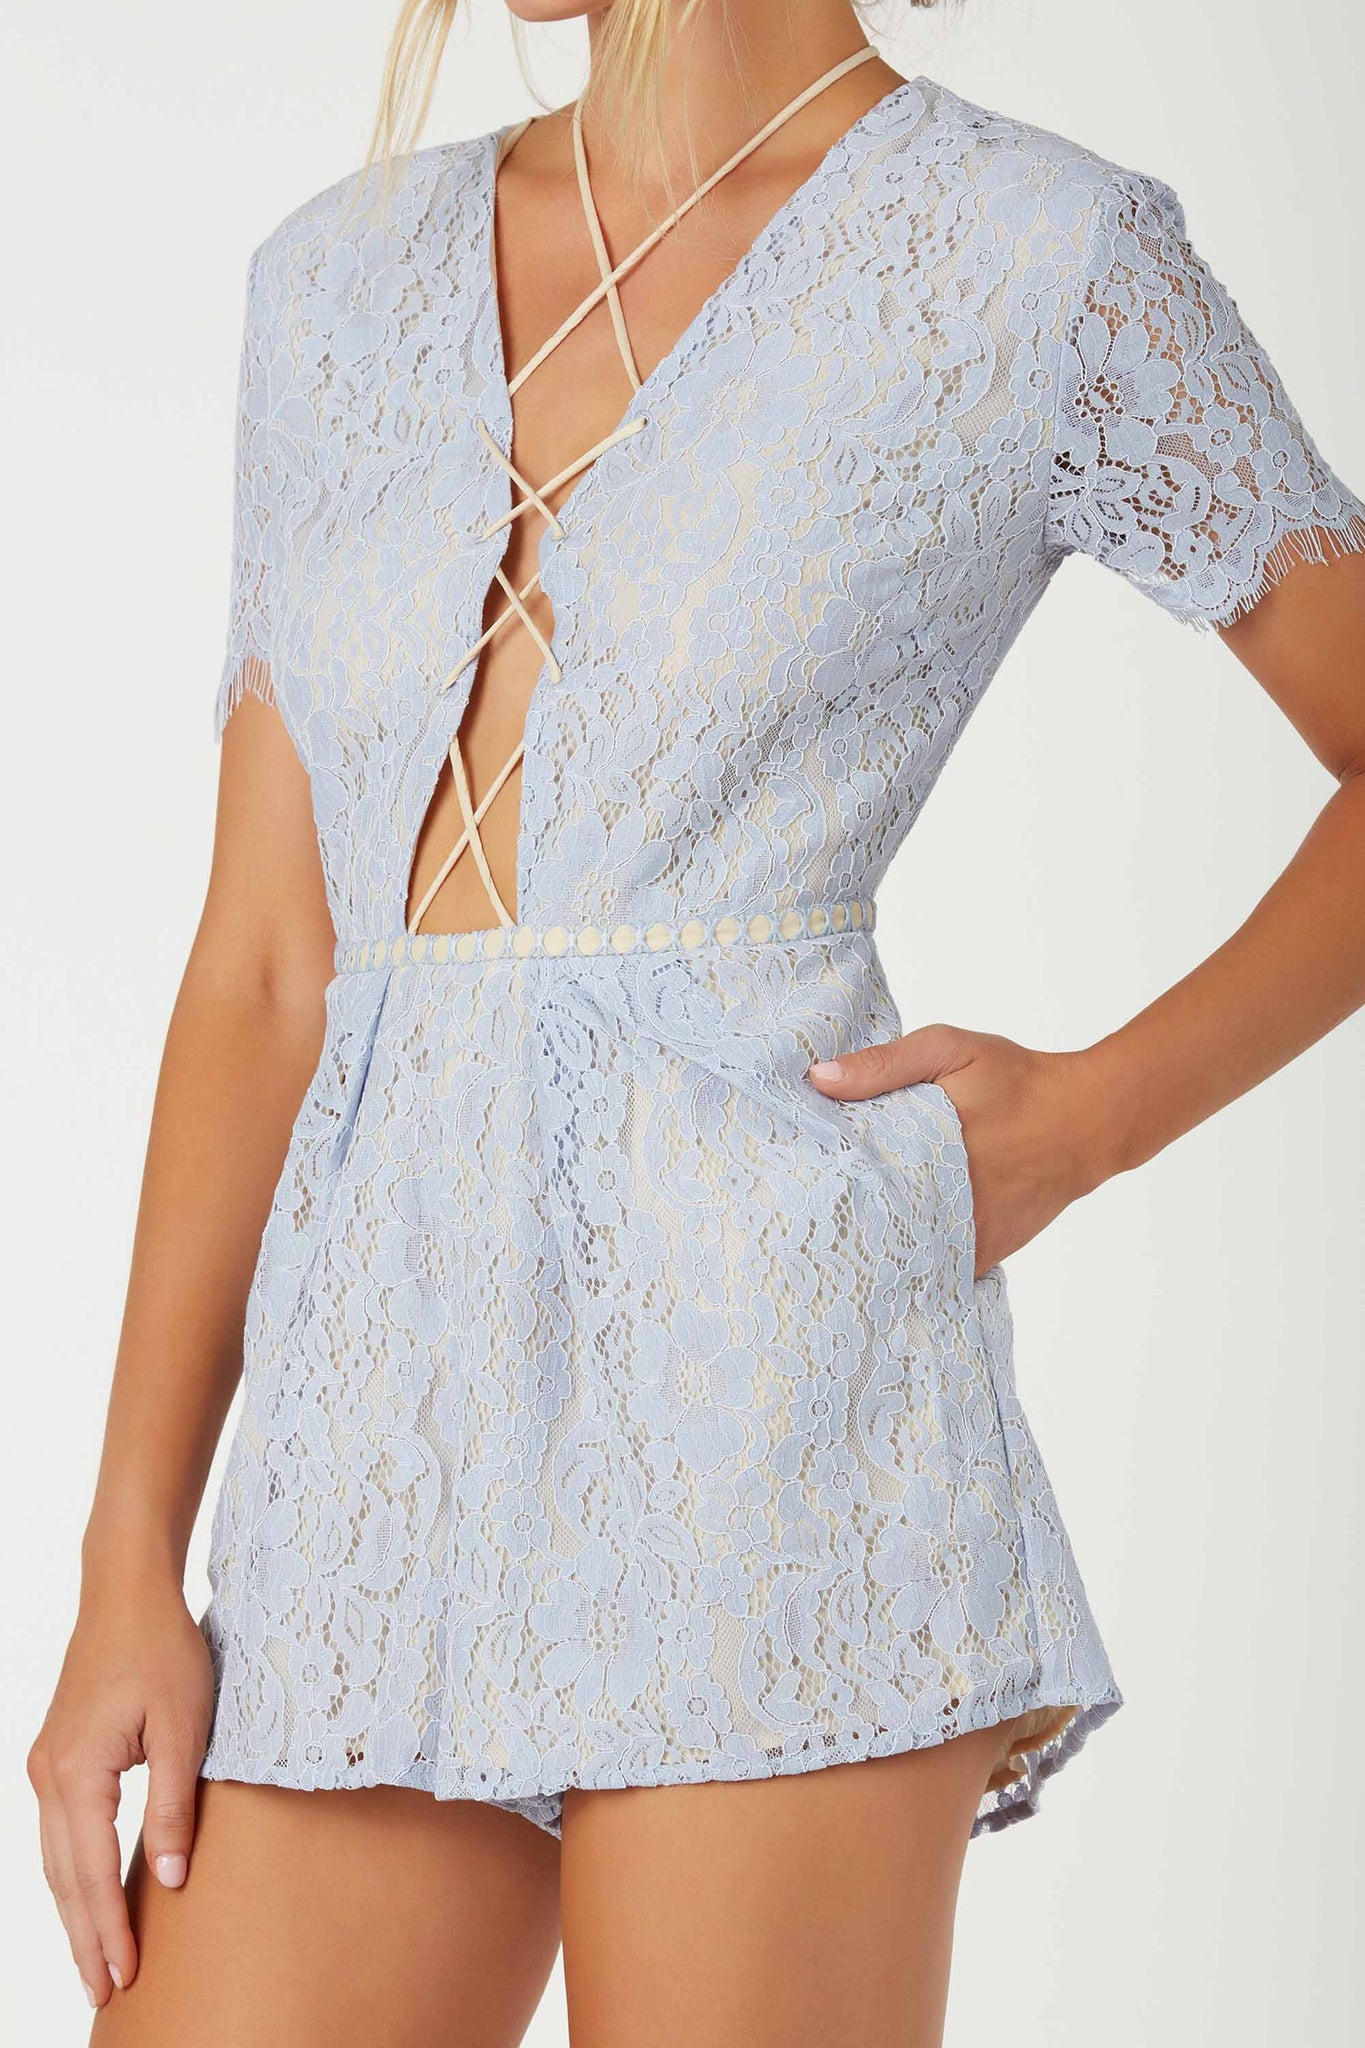 Elgant lace romper with plunging front with lace up design. Eyelash trim at sleeves with back zip closure.